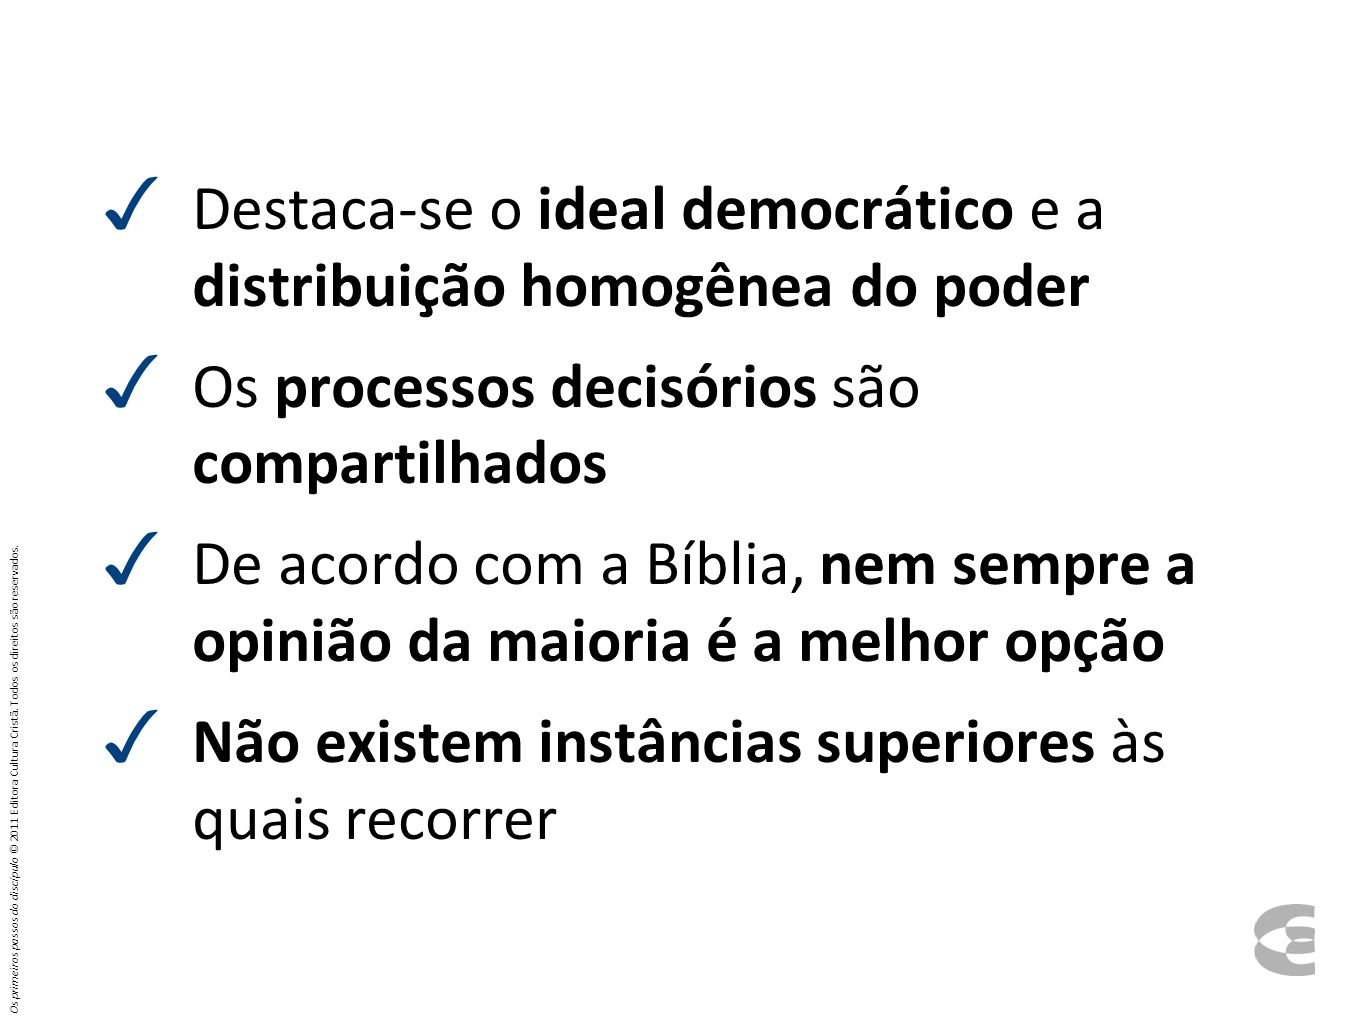 Destaca-se o ideal democrático e a distribuição homogênea do poder